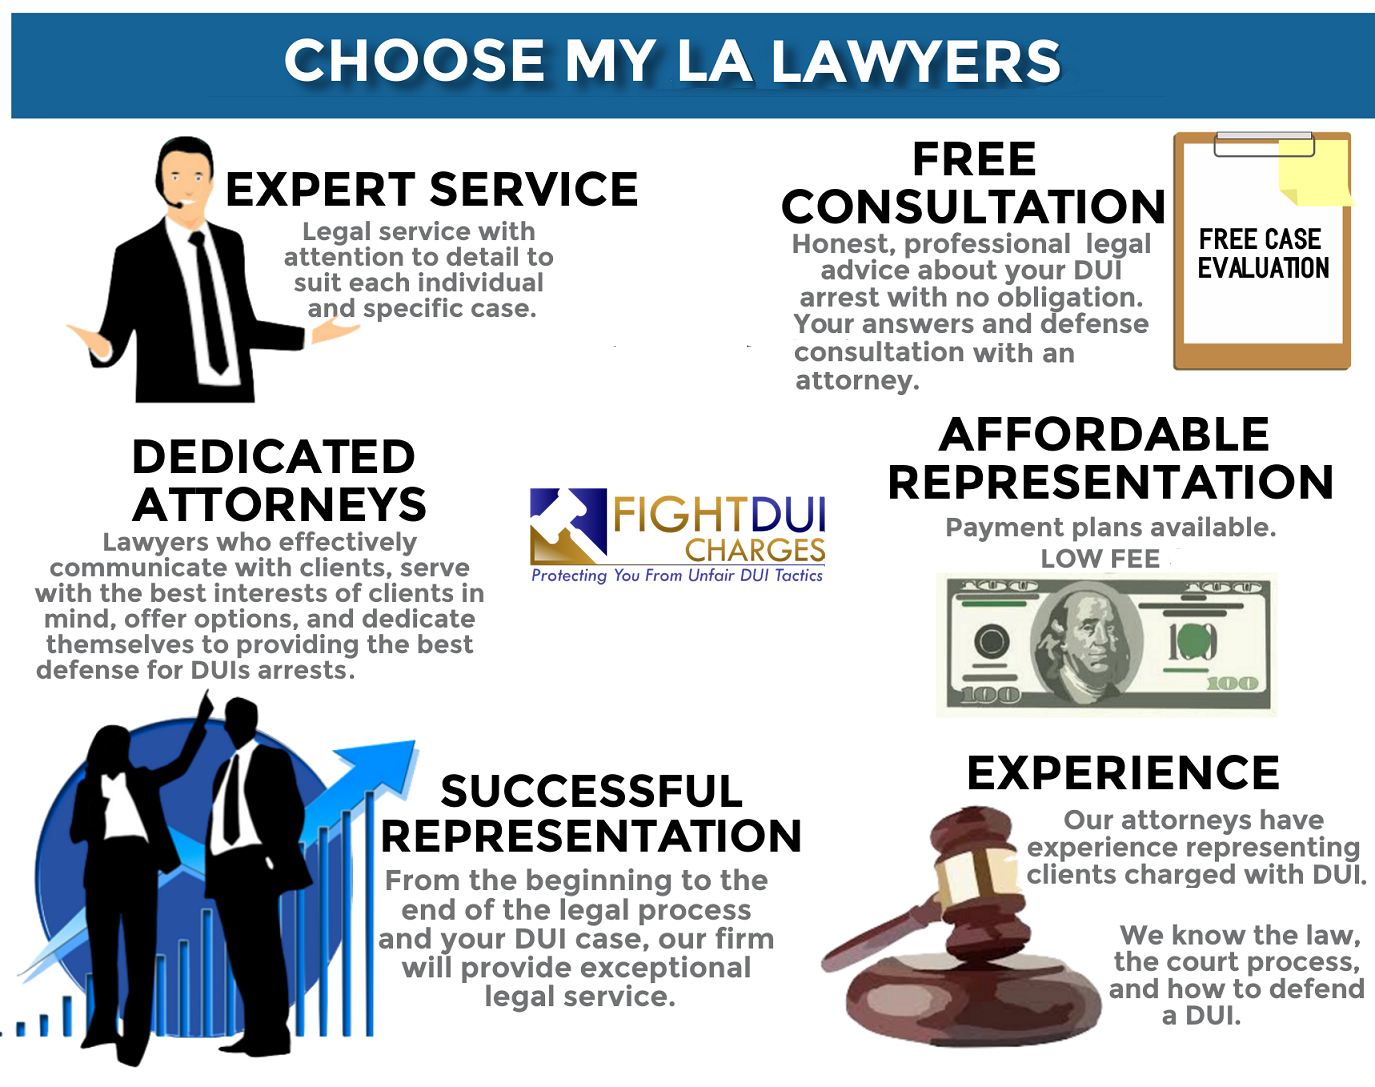 Best Los Angeles DUI Attorneys Near Me Reviews - Recommended Los Angeles DUI Lawyer Remedy